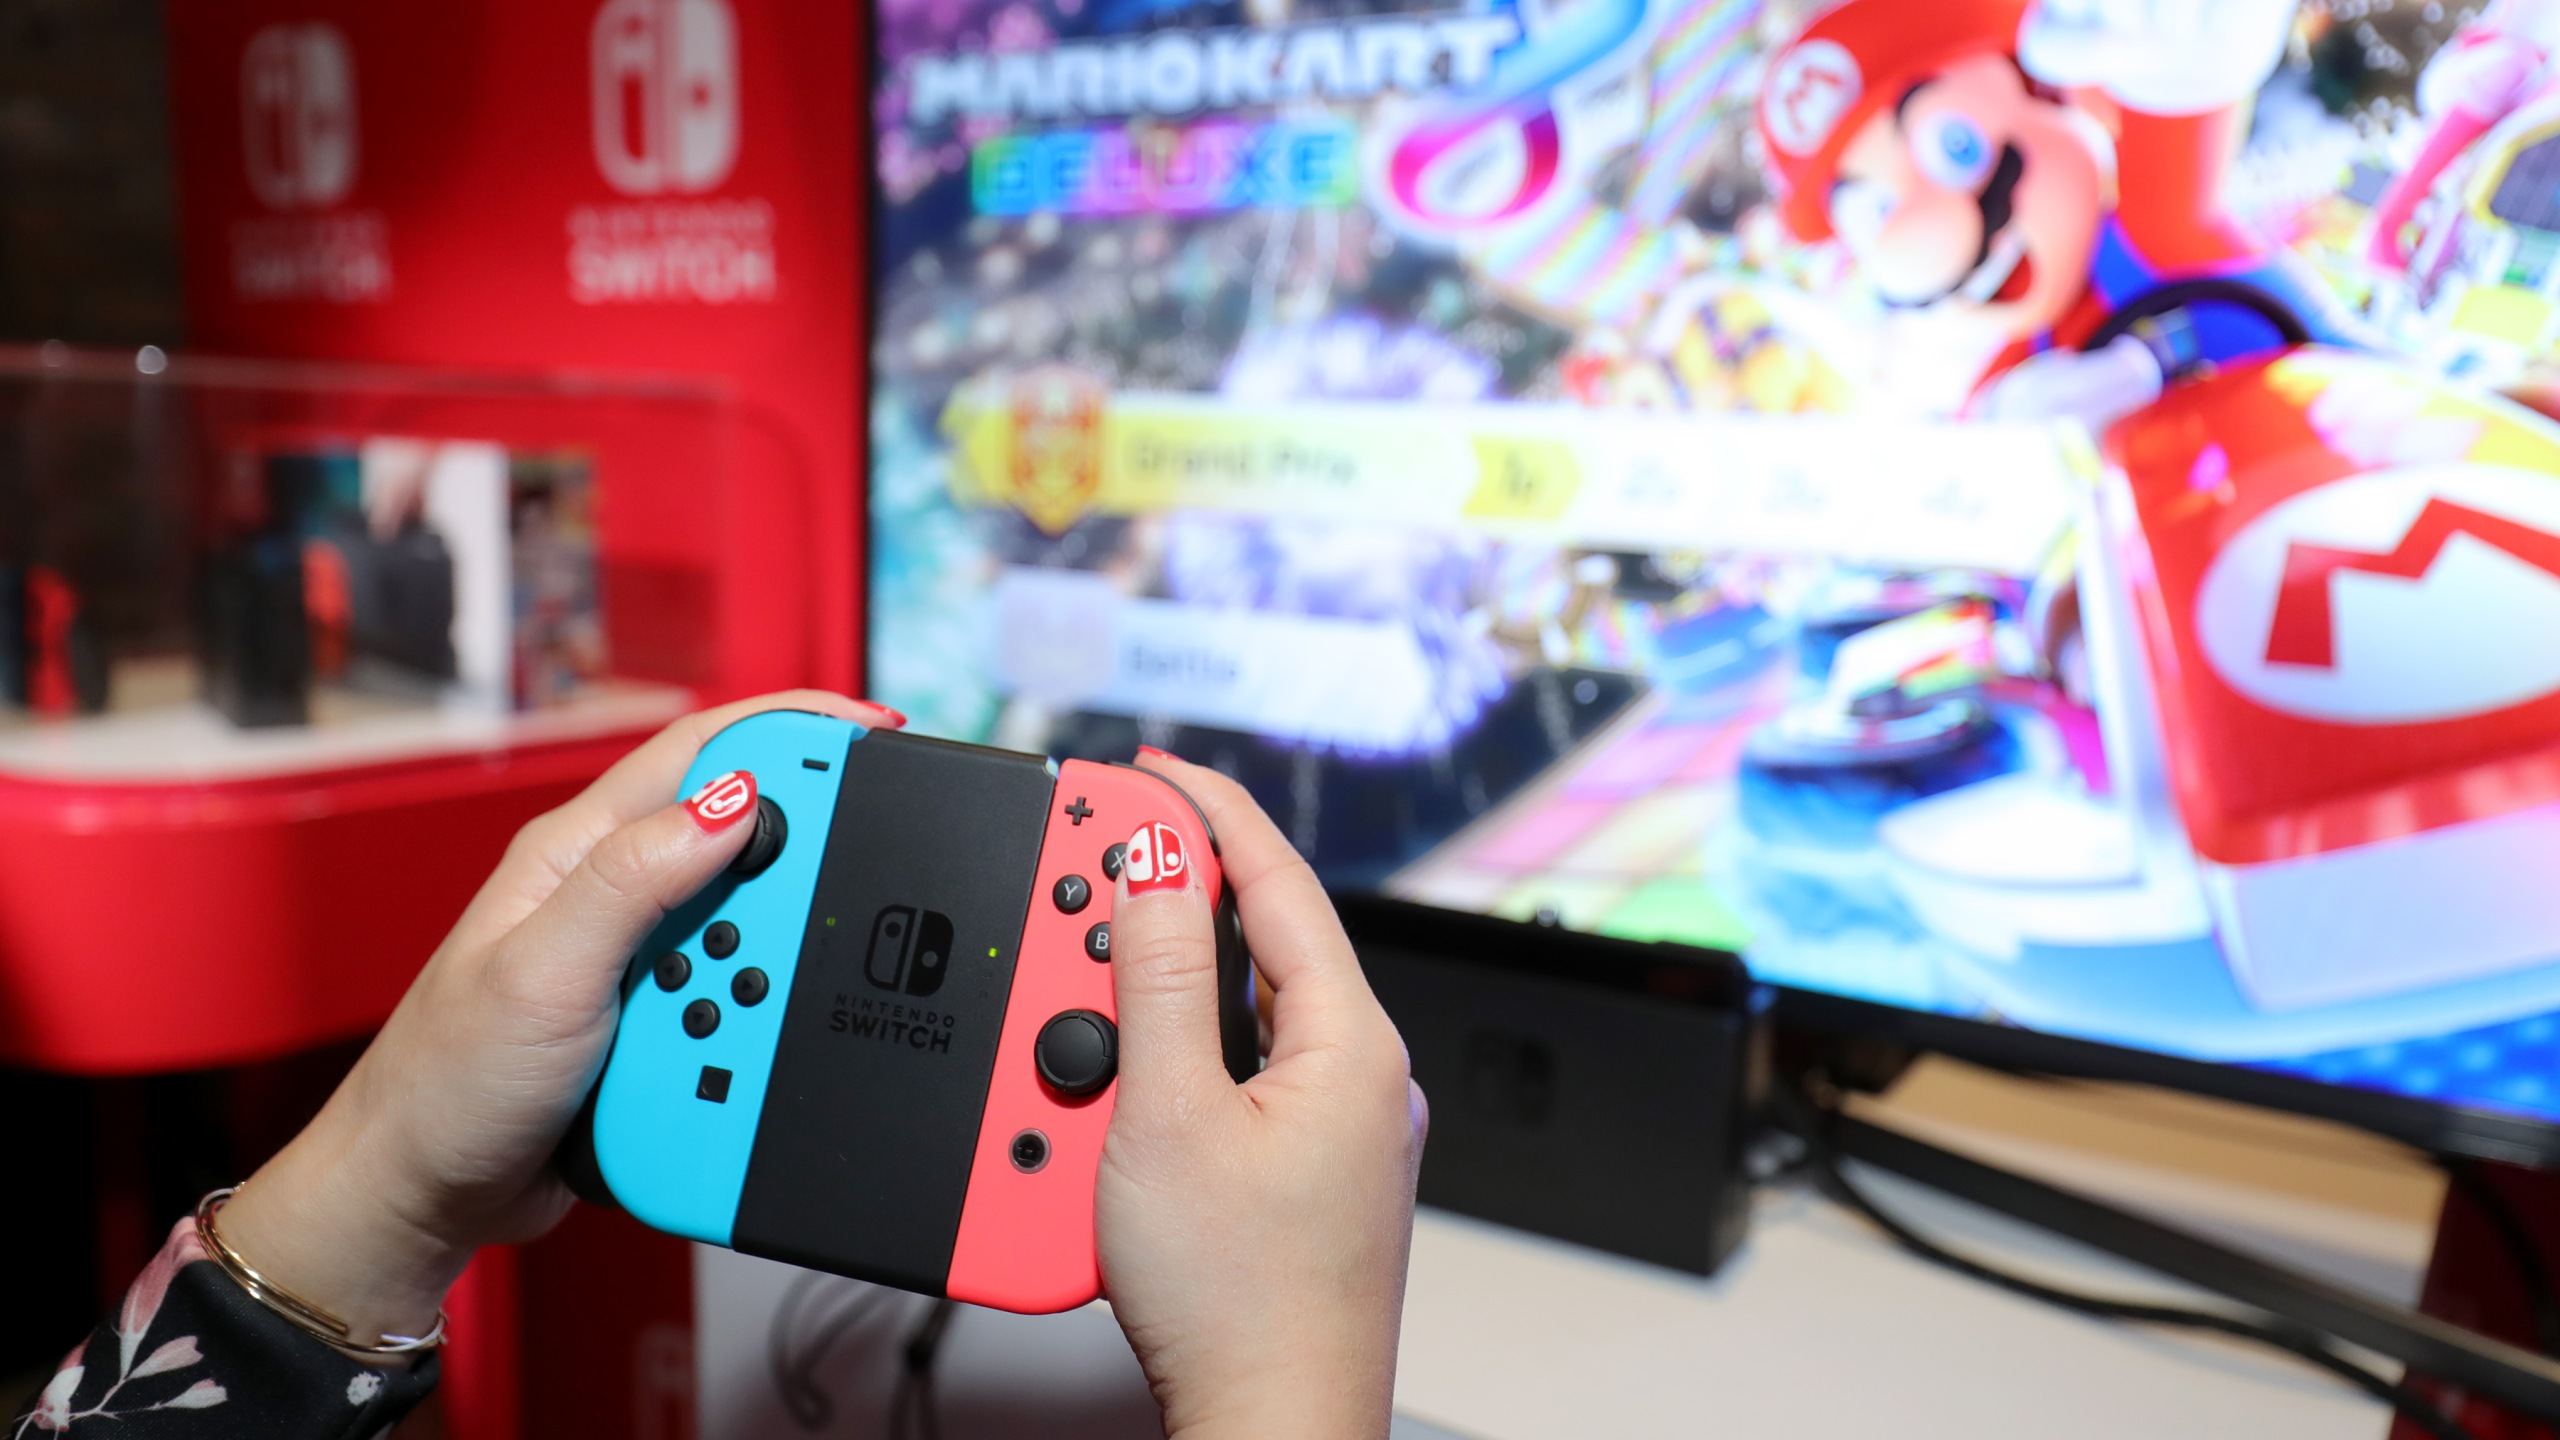 A guest enjoys playing Mario Kart 8 Deluxe on the new Nintendo Switch at a special preview event in New York on Jan. 13, 2017. Launching in March 3, 2017, Nintendo announced on Feb. 1, 2018, that Mario Kart will soon be available on mobile phones. (Credit: Neilson Barnard/Getty Images for Nintendo of America)